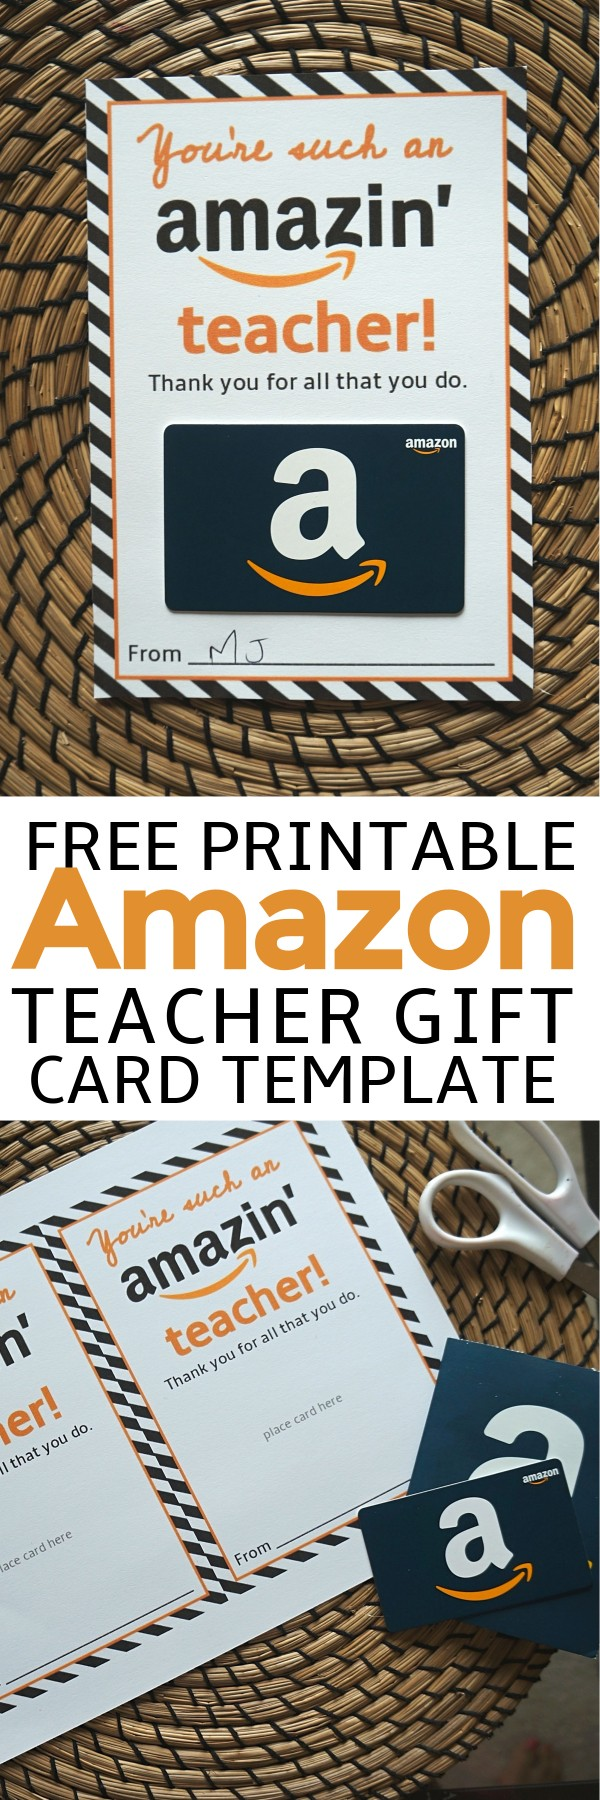 Free Amazon Teacher Gift Card Printable Template | free printable teacher appreciation gift card holder | free teacher appreciation printables | teacher appreciation gift card ideas | amazon gift card printable